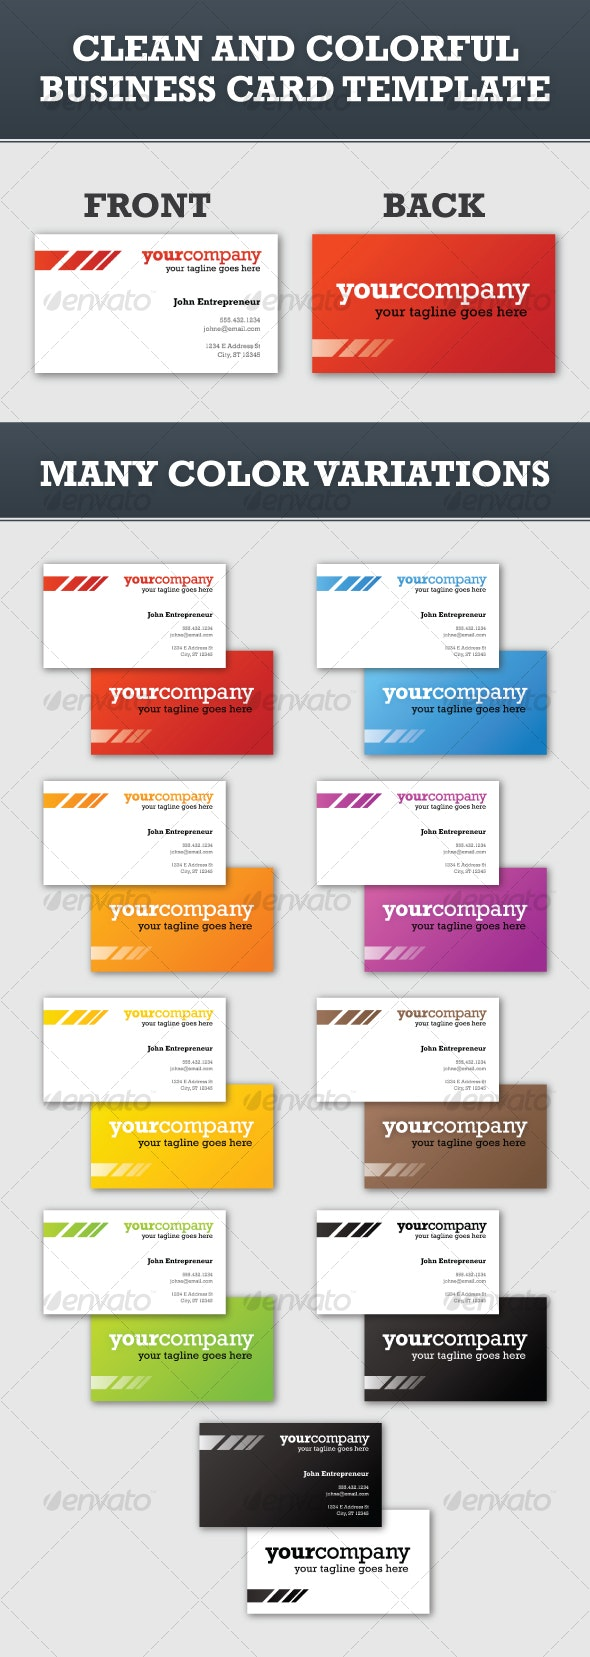 Clean and Colorful Business Card Template - Creative Business Cards